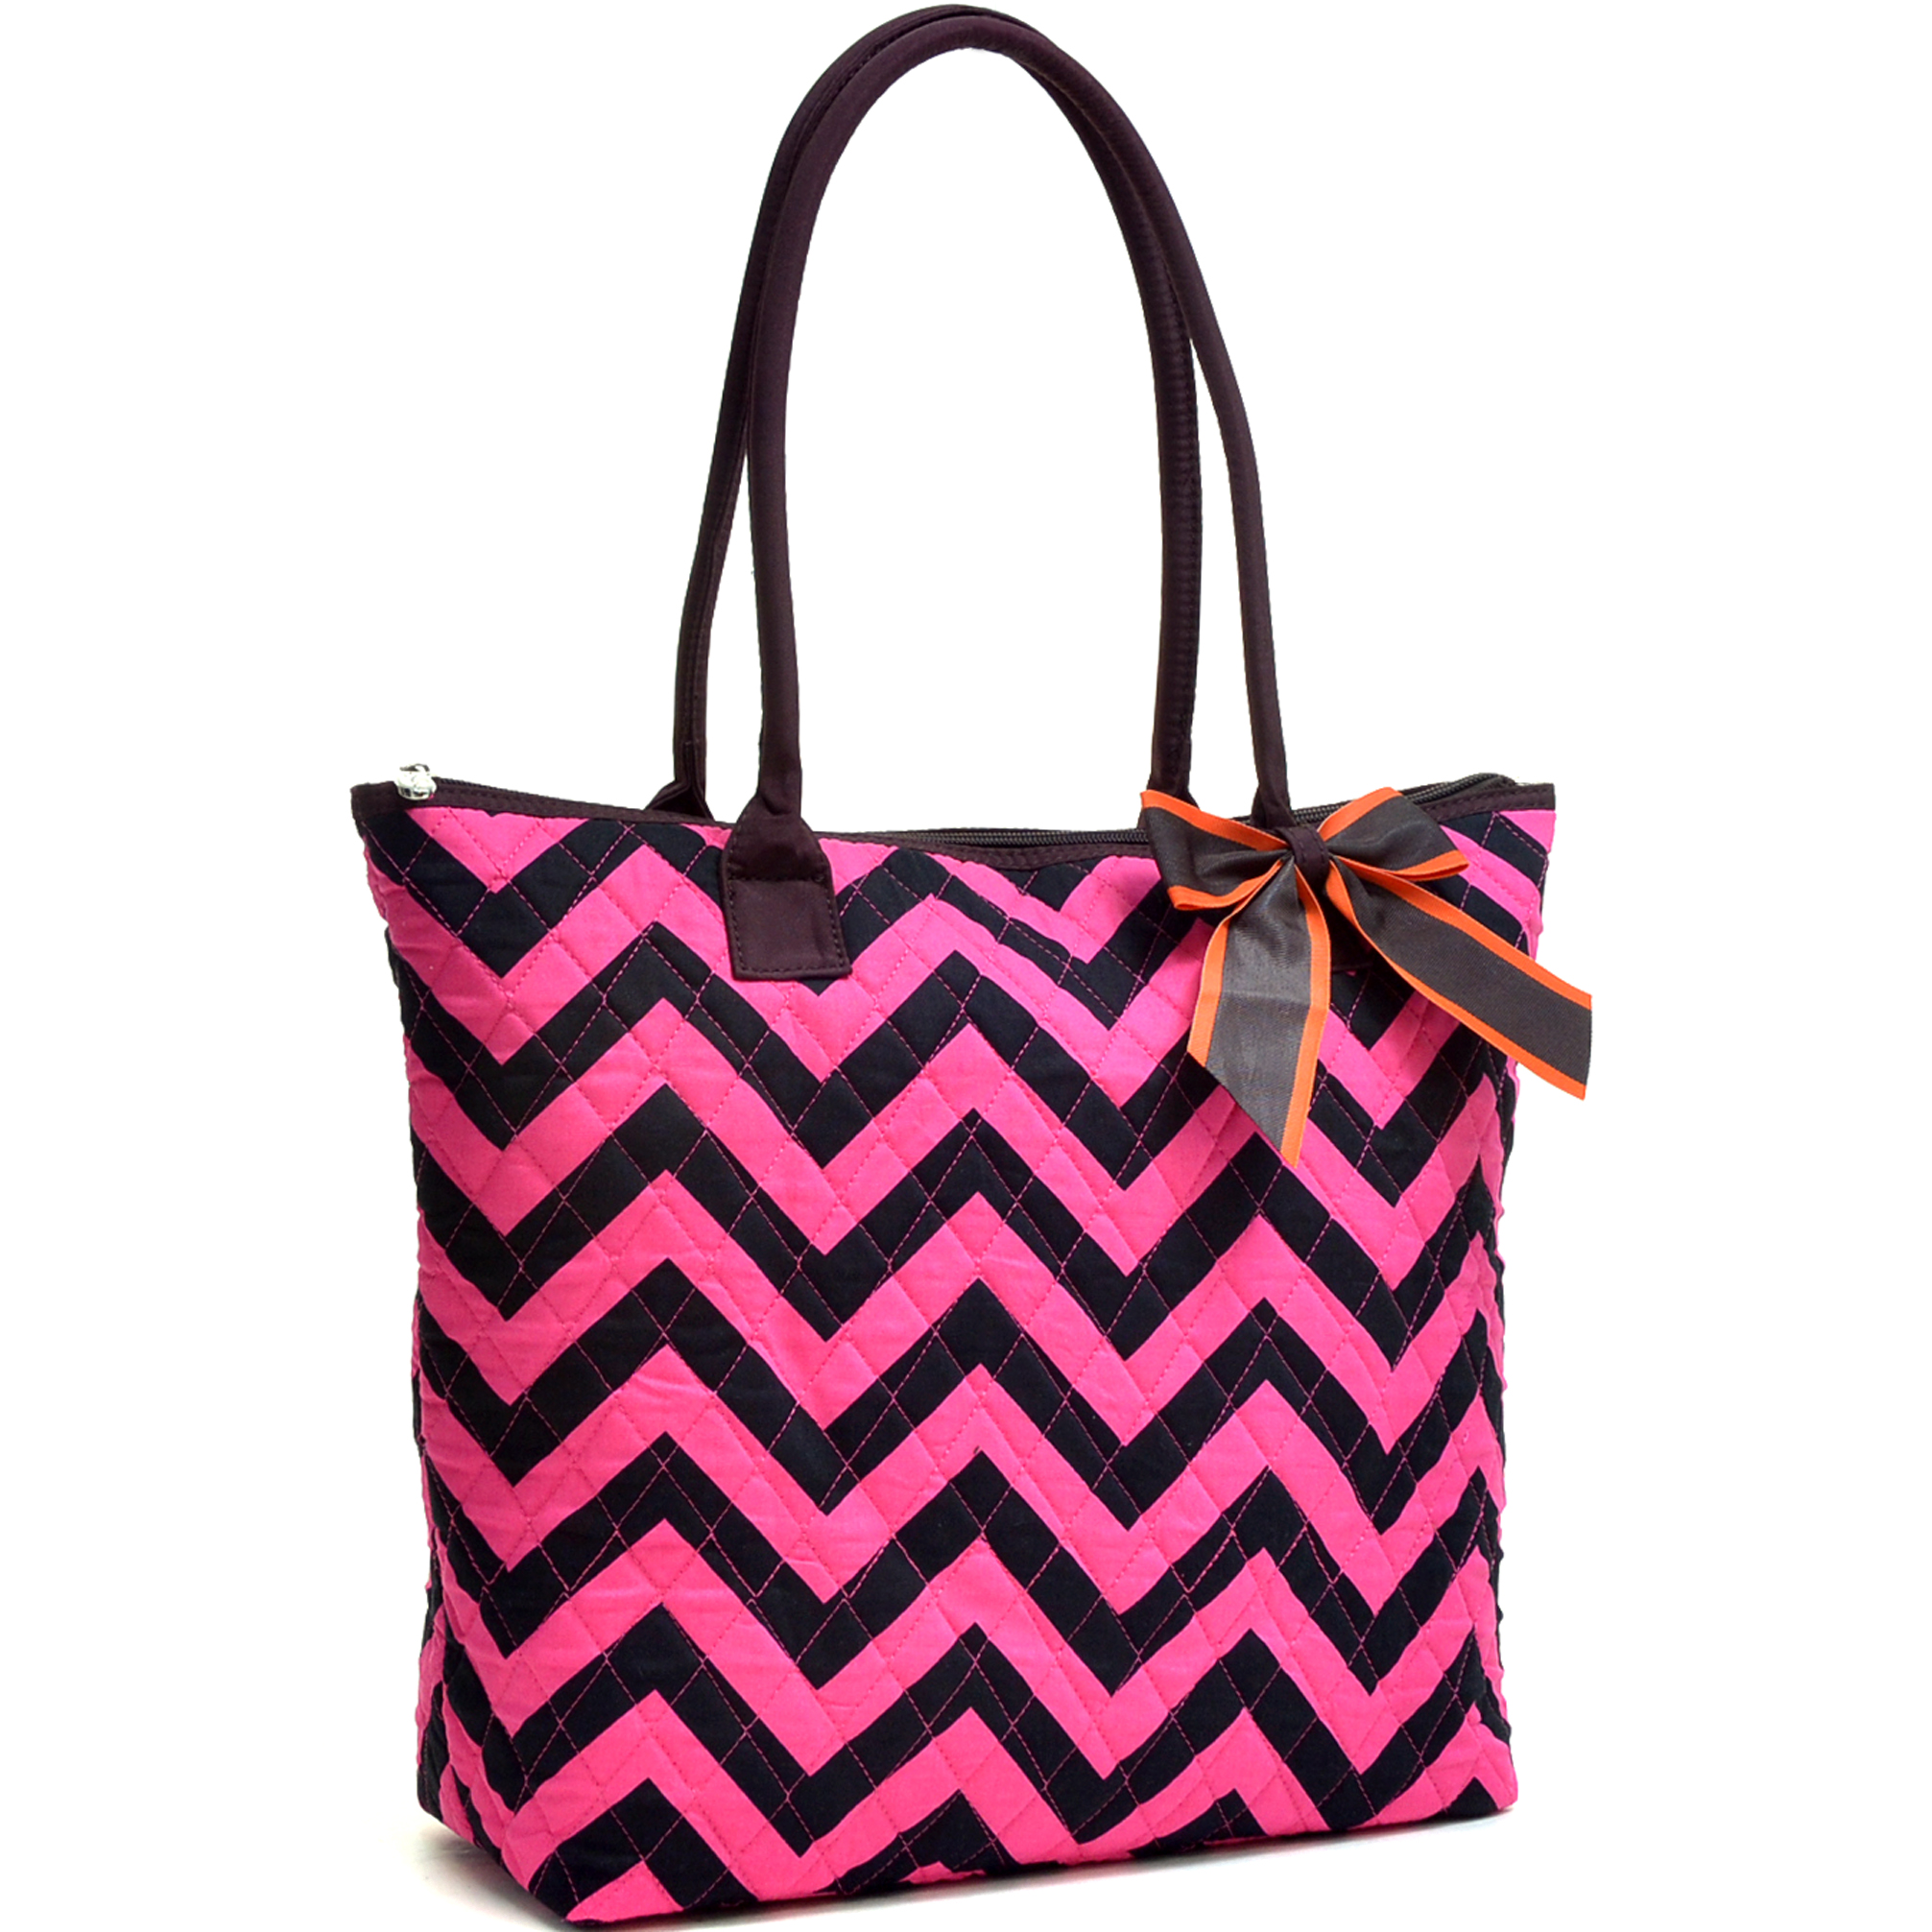 Chevron Print Quilted Tote Bag with Removable Bow